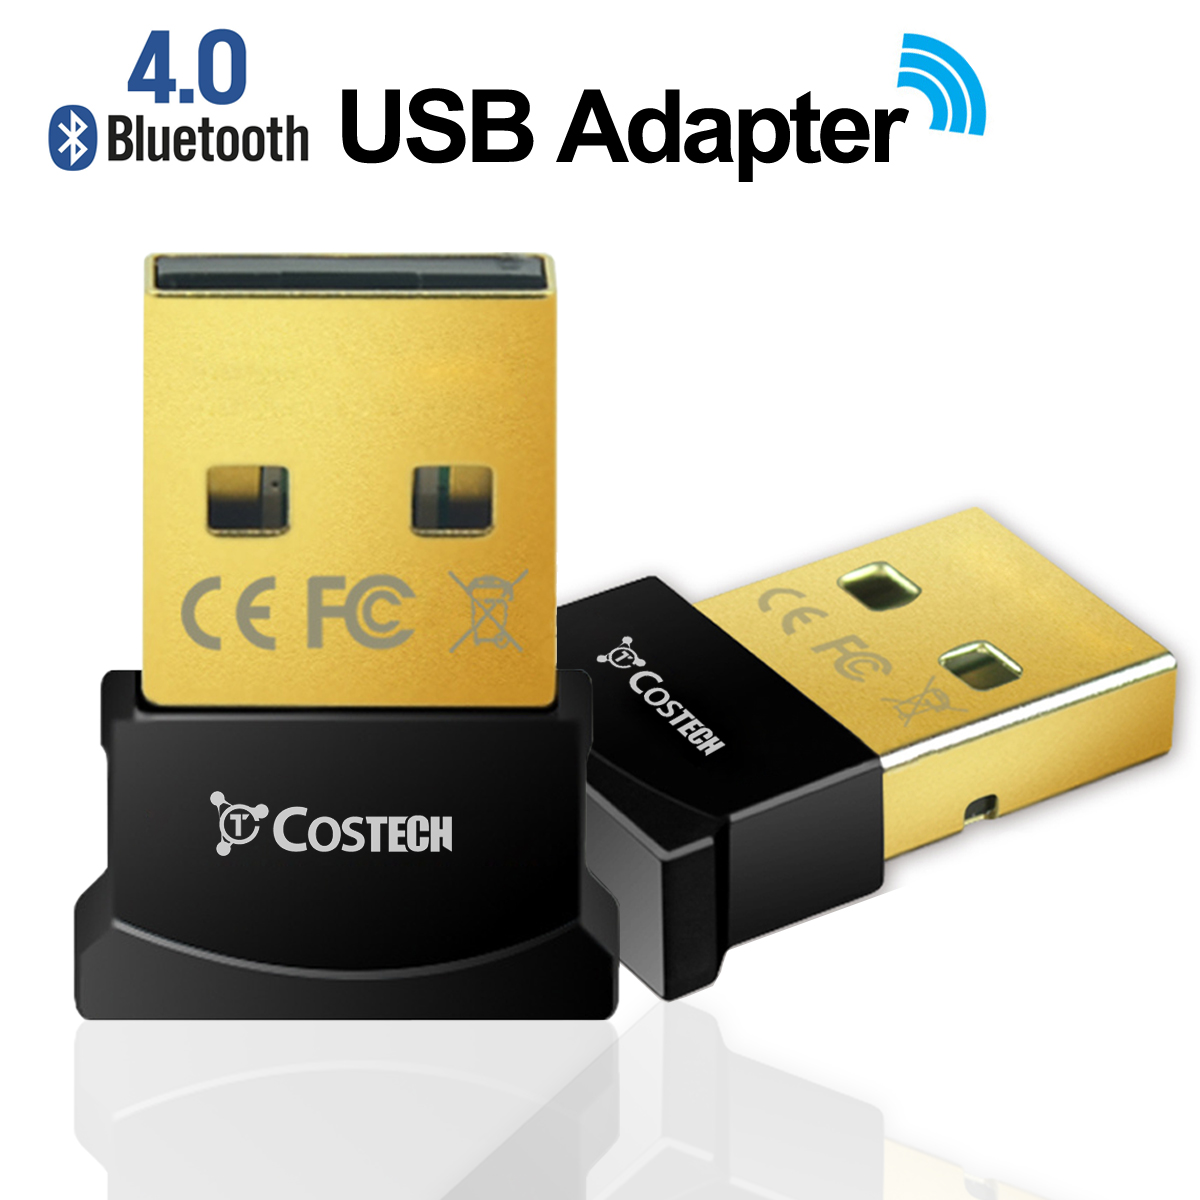 Costech Bluetooth 4.0 USB Adapter Gold Plated Micro Dongle 33ft/10m Compatible with Windows 10,8.1/8,7,Vista, XP, 32/64 Bit for Desktop , Laptop, computers